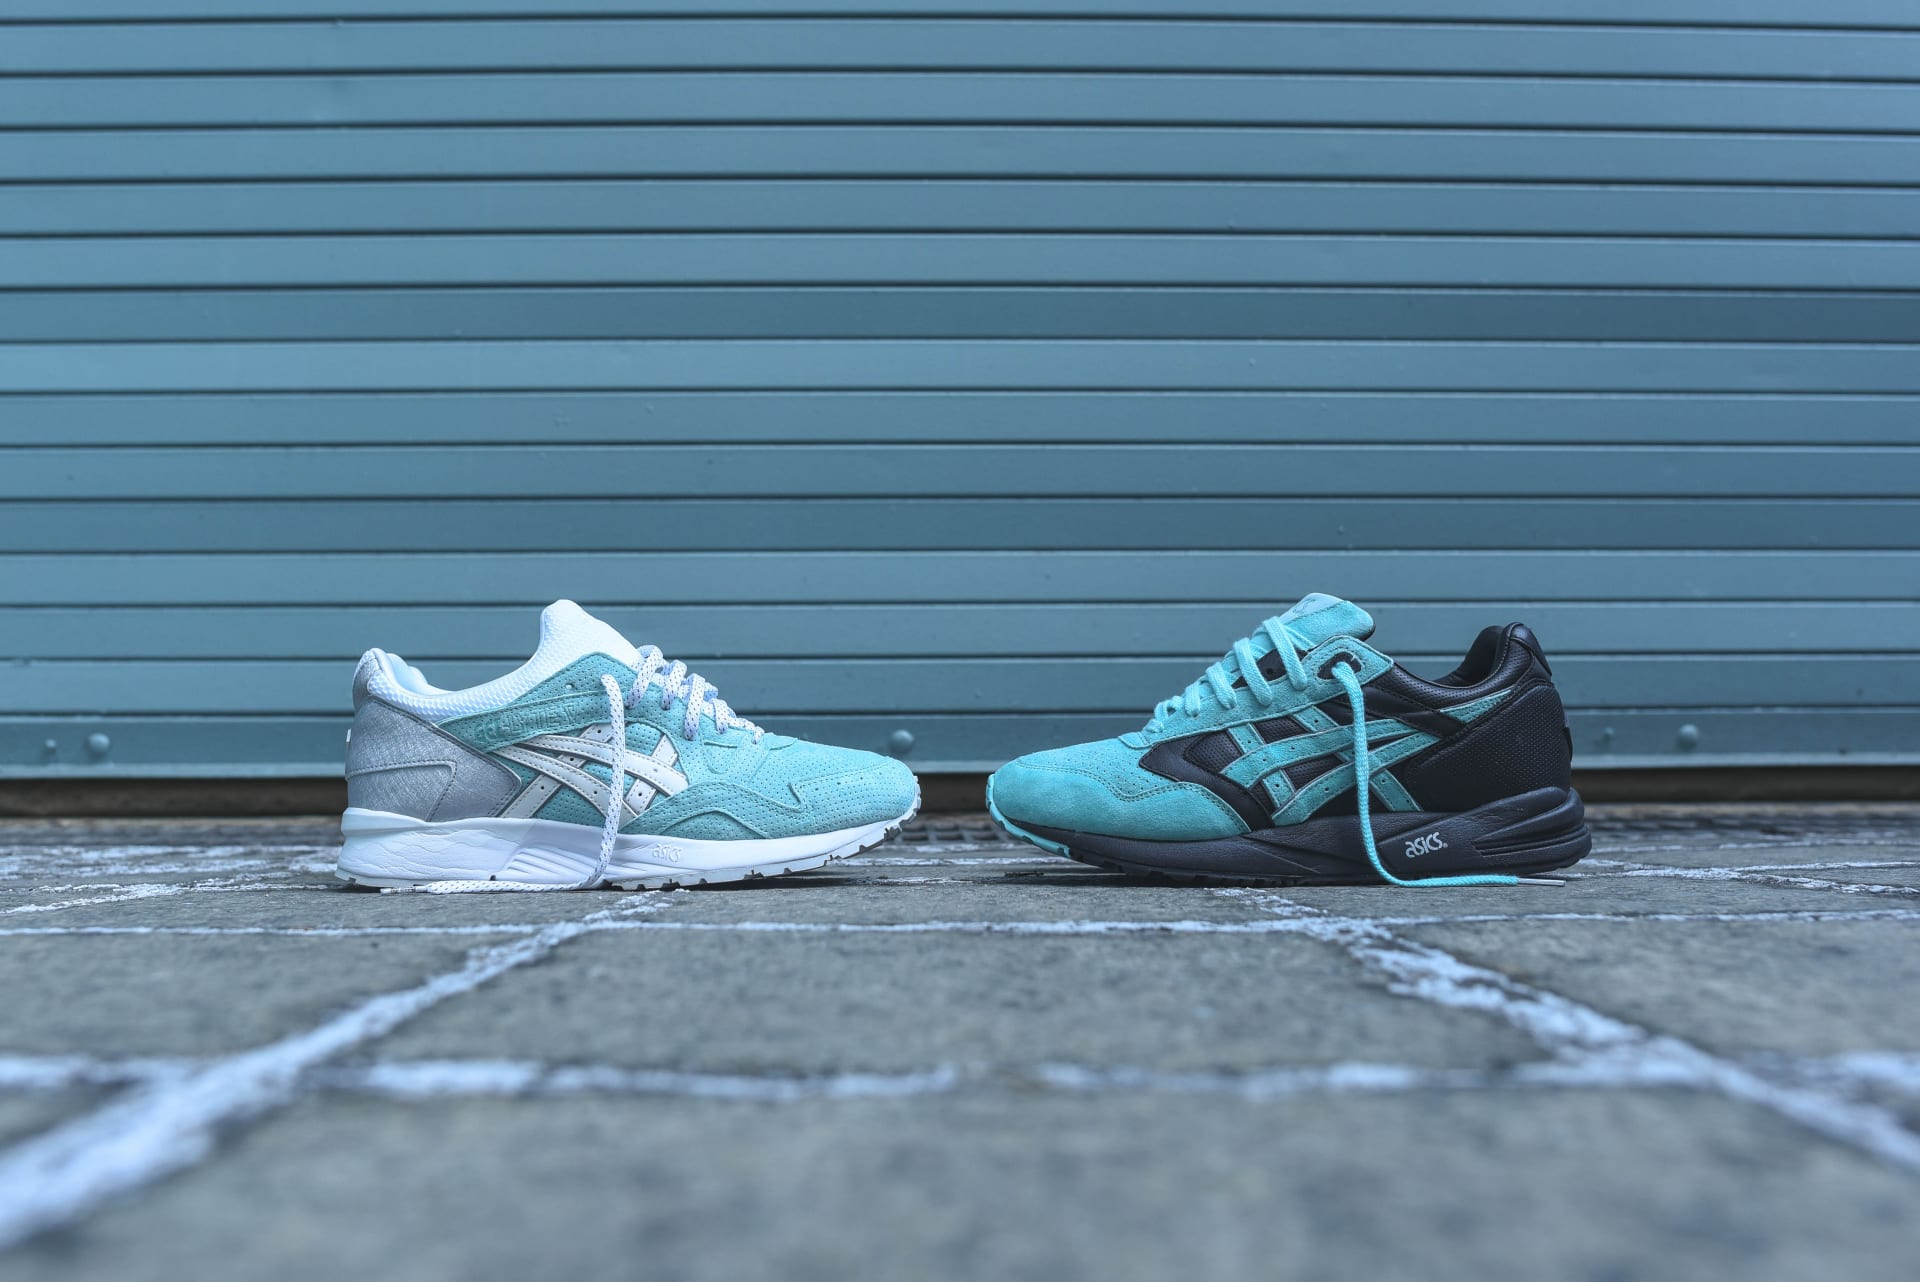 927a1bdae75 Ronnie Fieg and Nicky Diamonds Asics Collaboration Interview